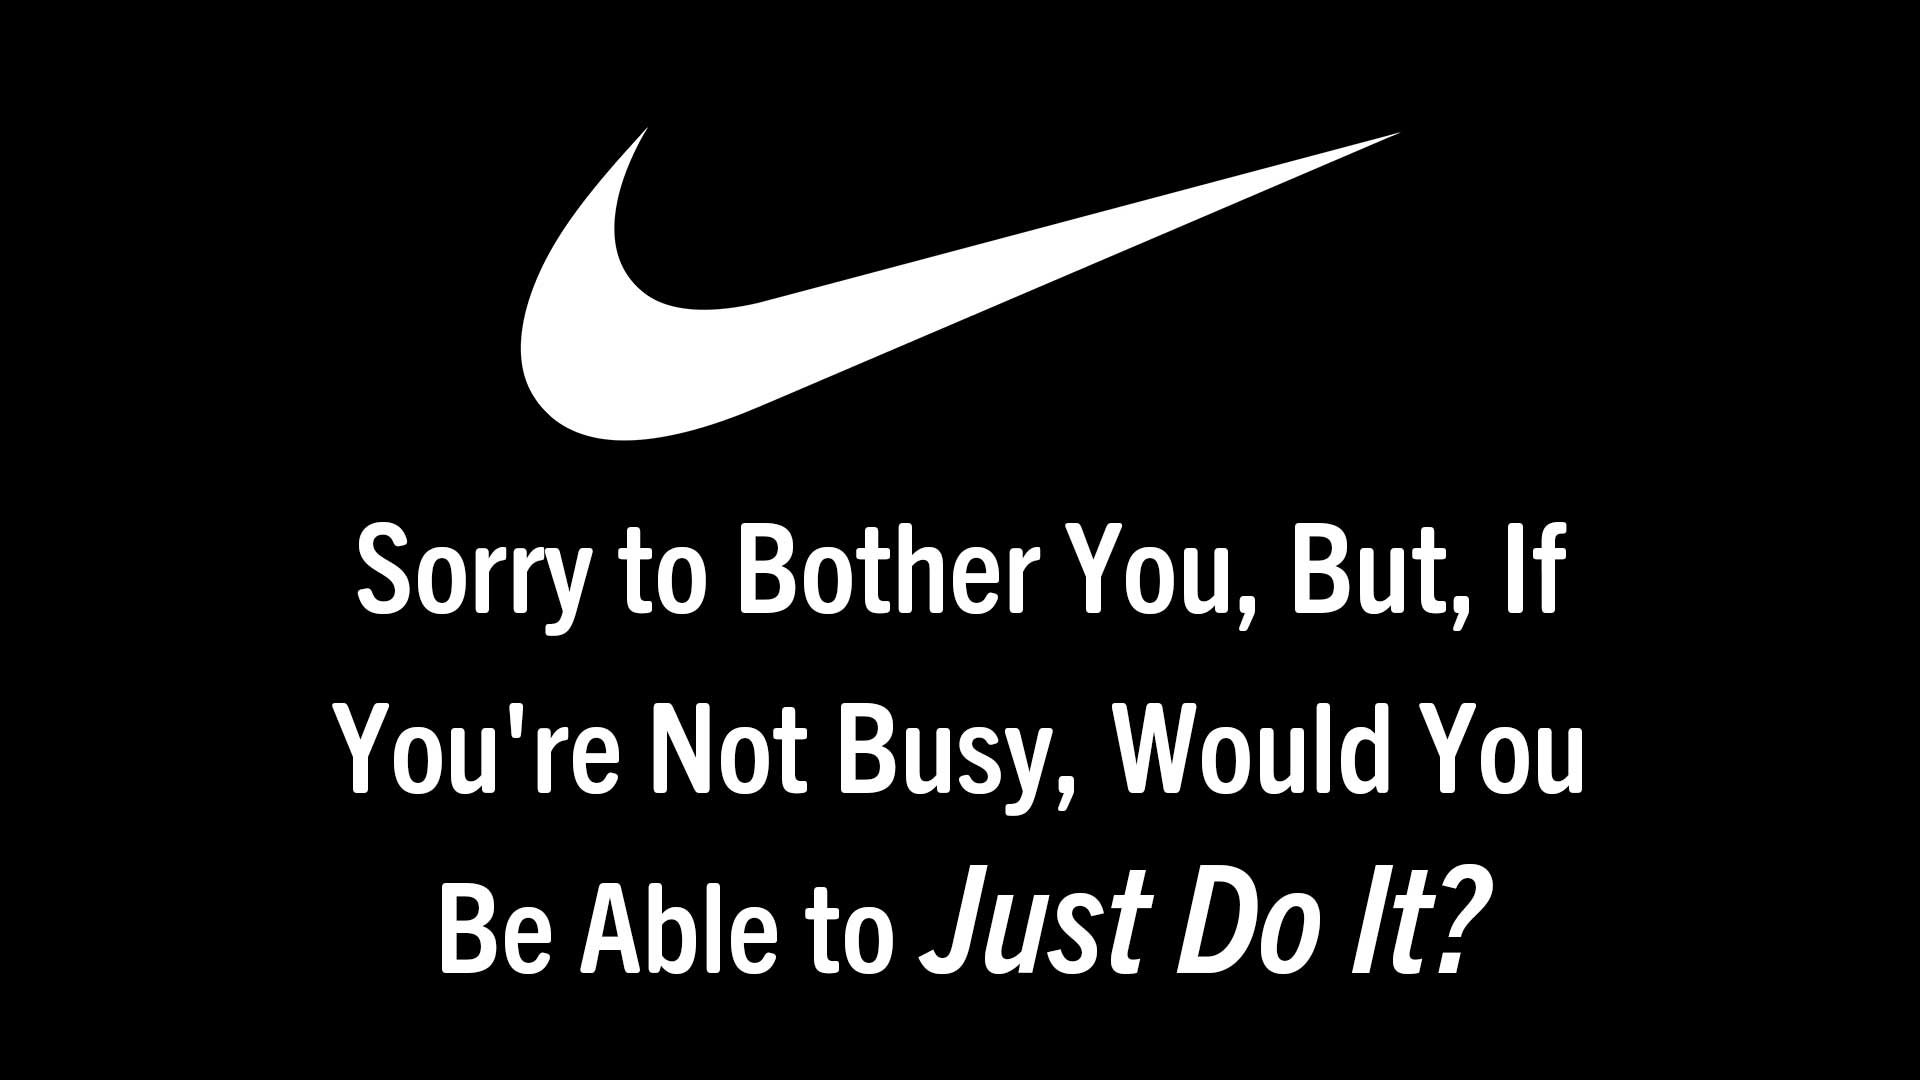 Nike-Creates-Gentler-Slogan-for-Midwestern-Consumers--'Sorry-to-Bother-You,-But,-If-You're-Not-Busy,-Would-You-Be-Able-to-Just-Do-It-'.jpg